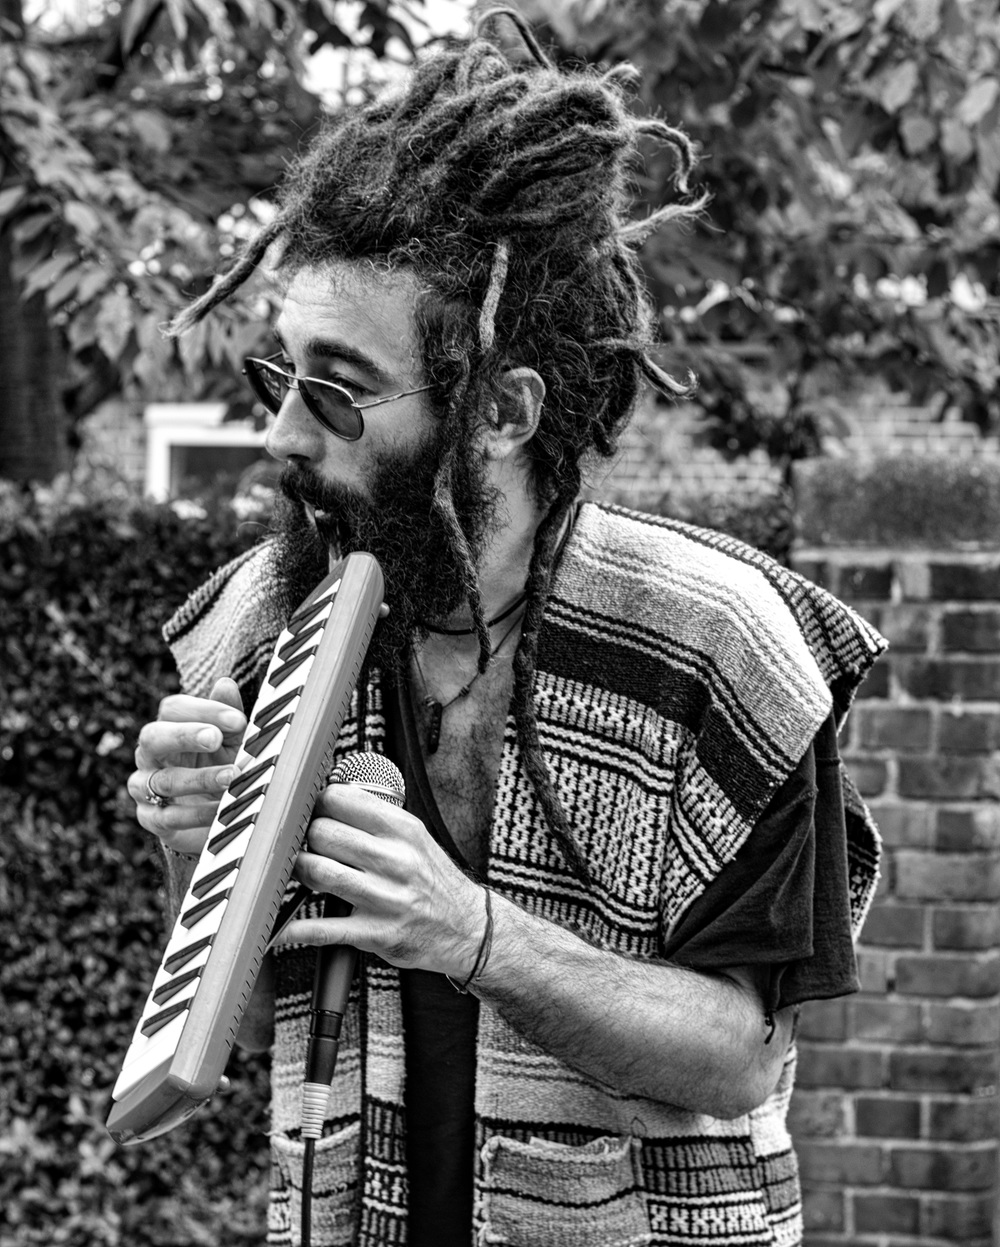 Street pipes: Leica SL and 50mm Zeiss Sonnar at f/4.8